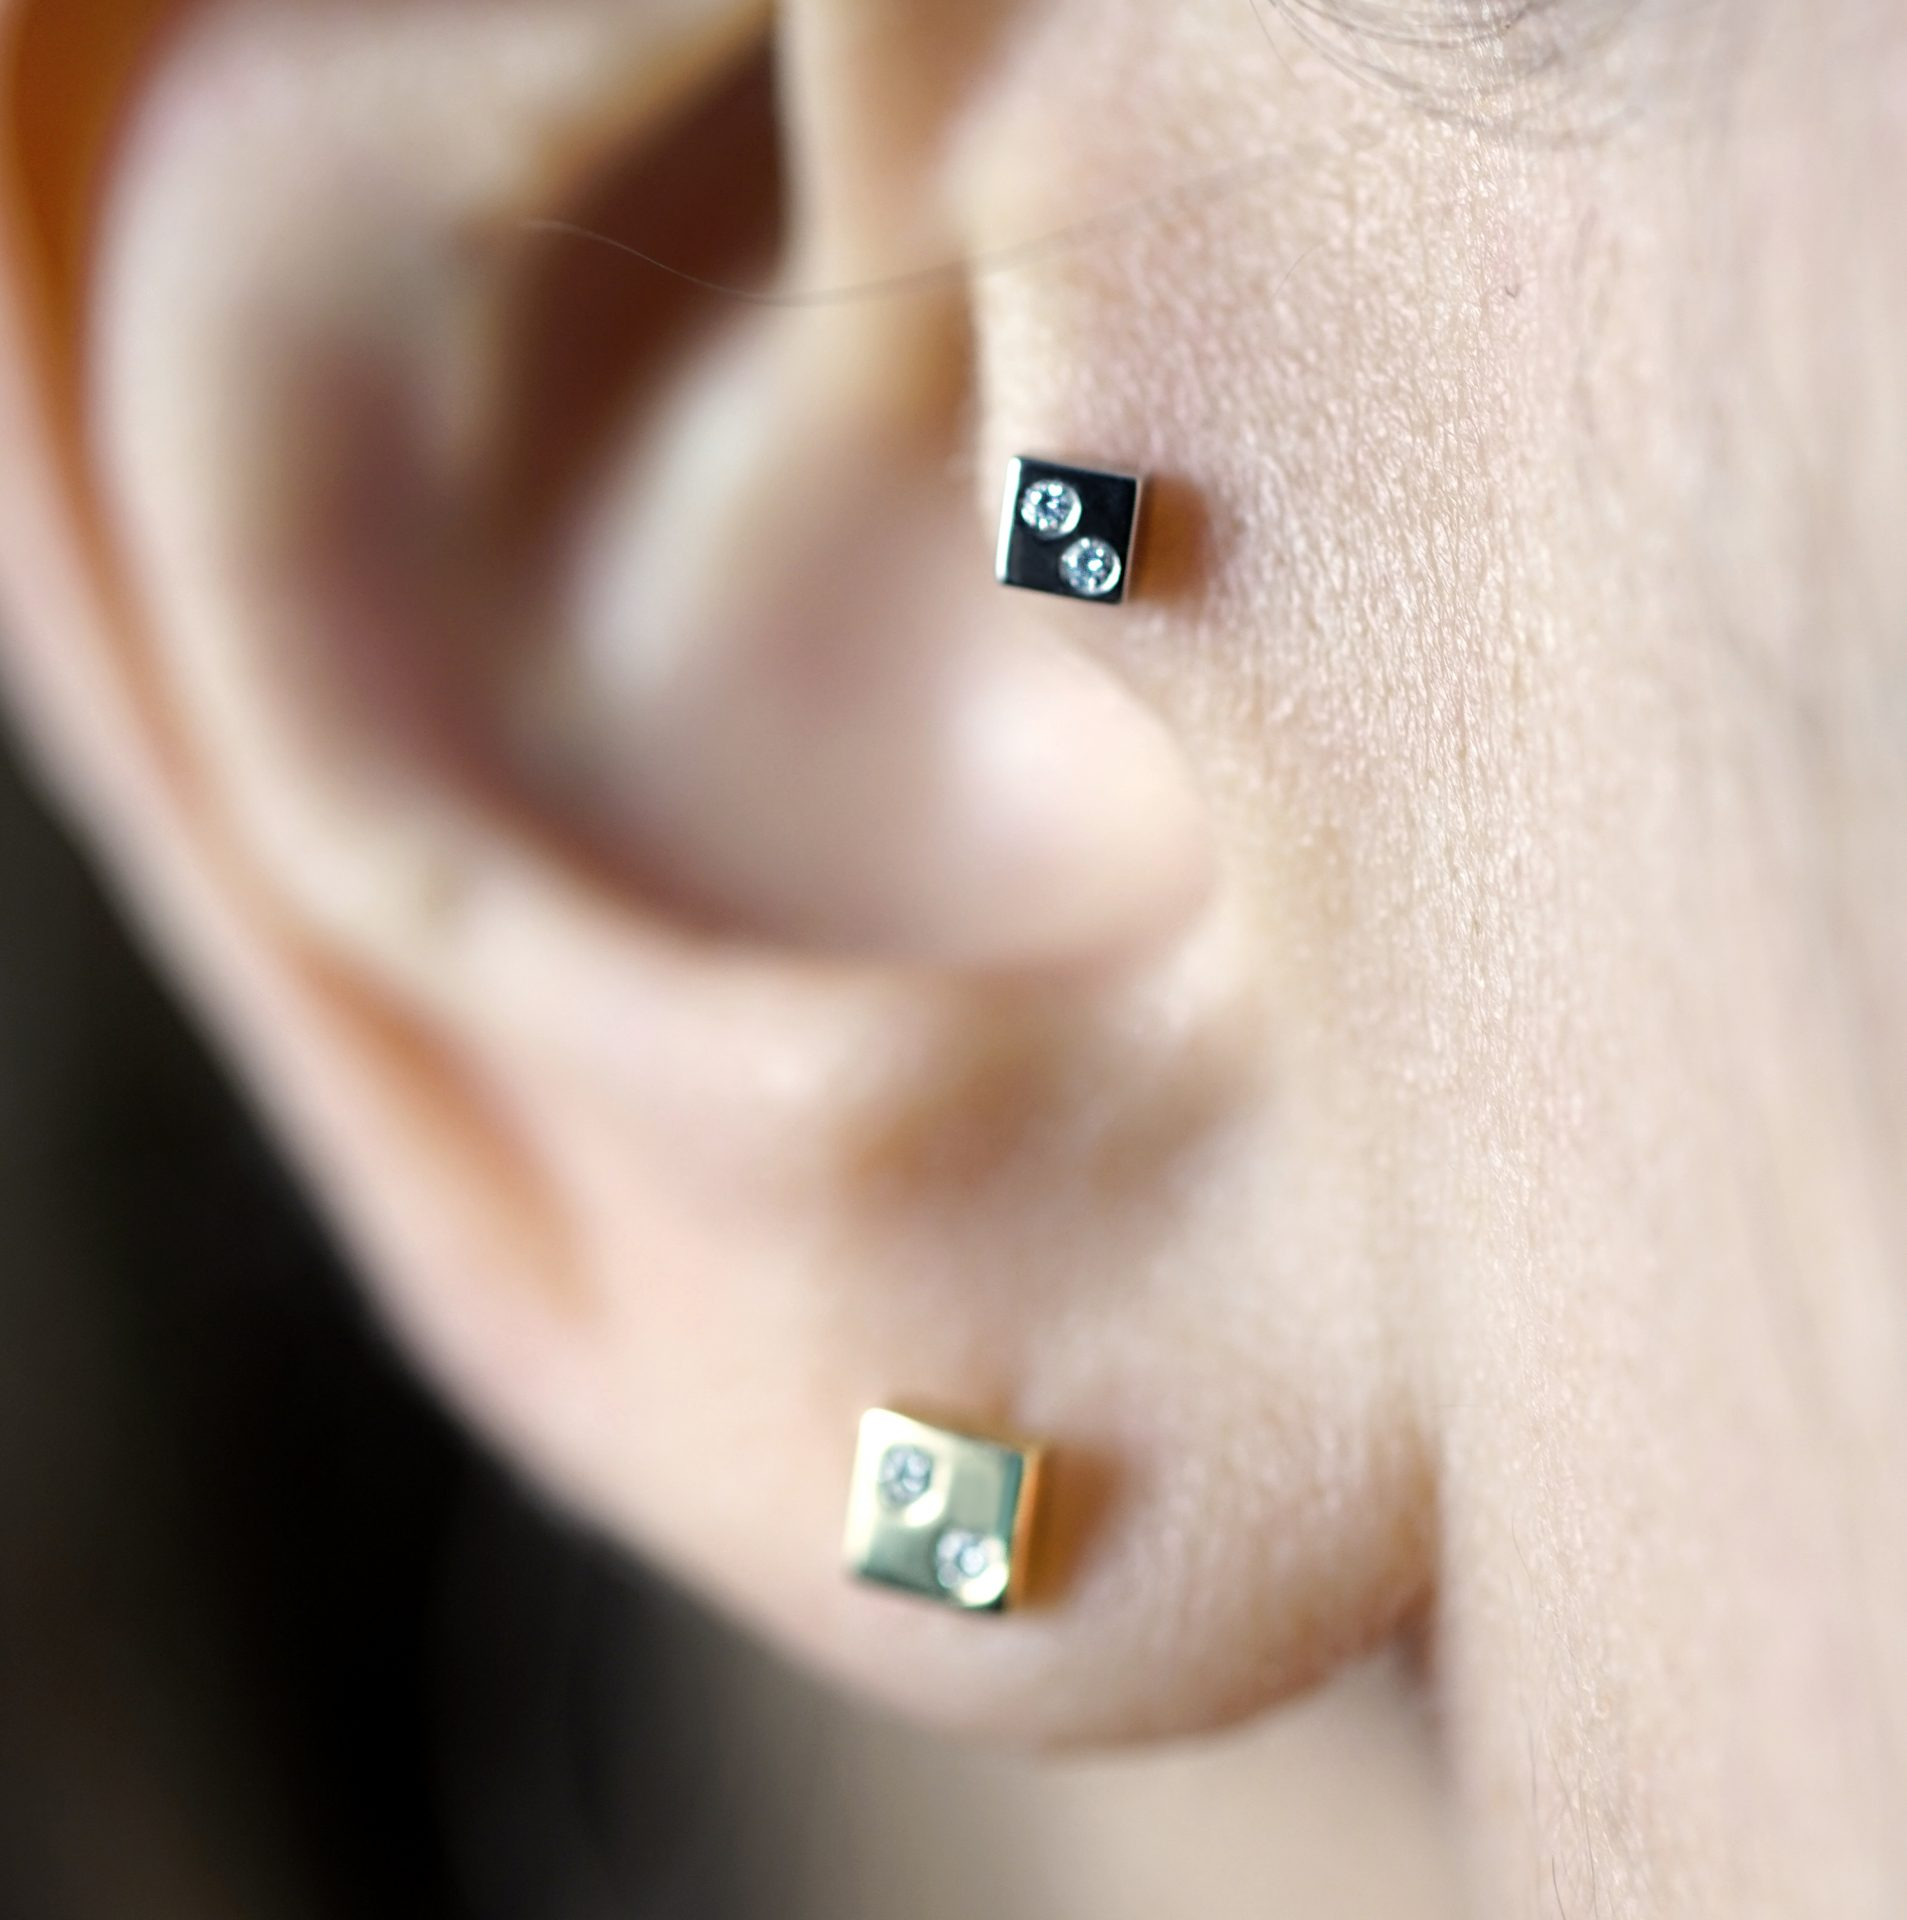 18k-solid-gold-geometric-unisex-square-luxury-screw-back-cartilage-earring-by-British-designer-Lena-Cohen-United-Kingdom